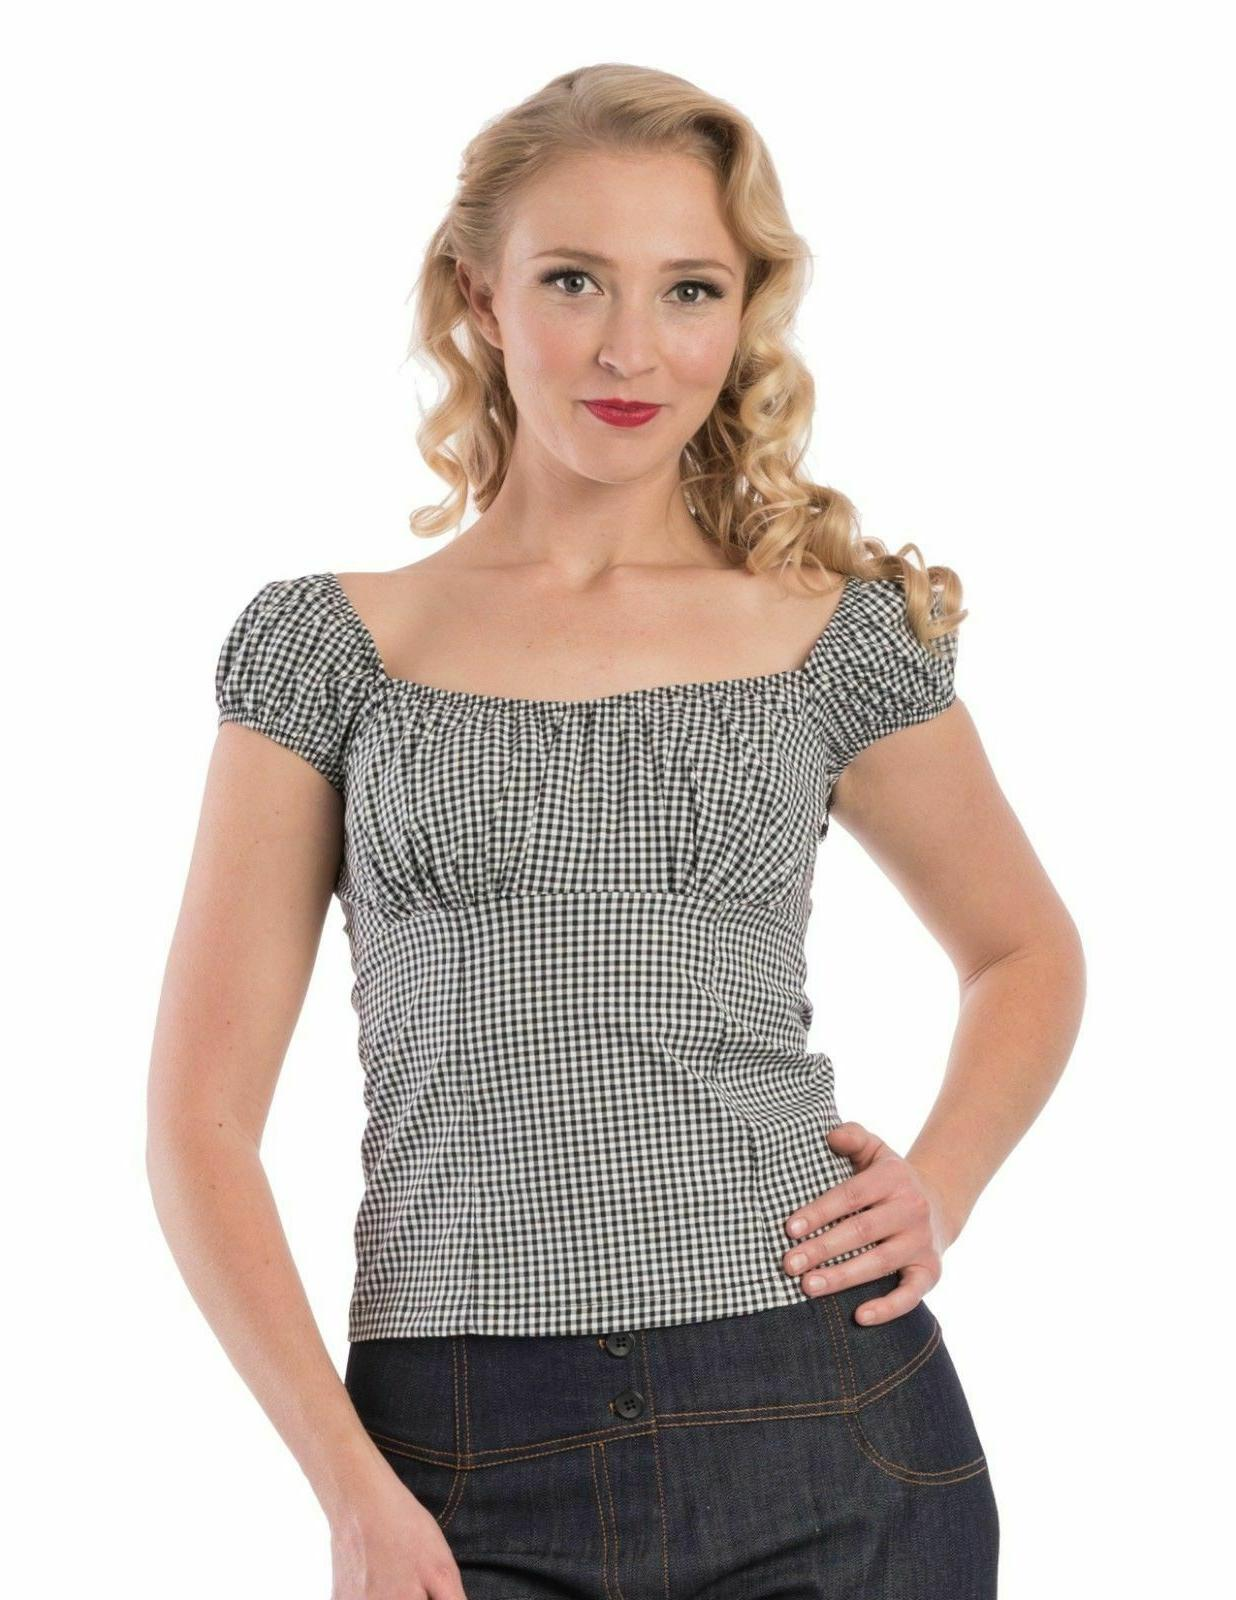 Steady Clothing BLACK & White Checker Daisy Fitted Peasant t